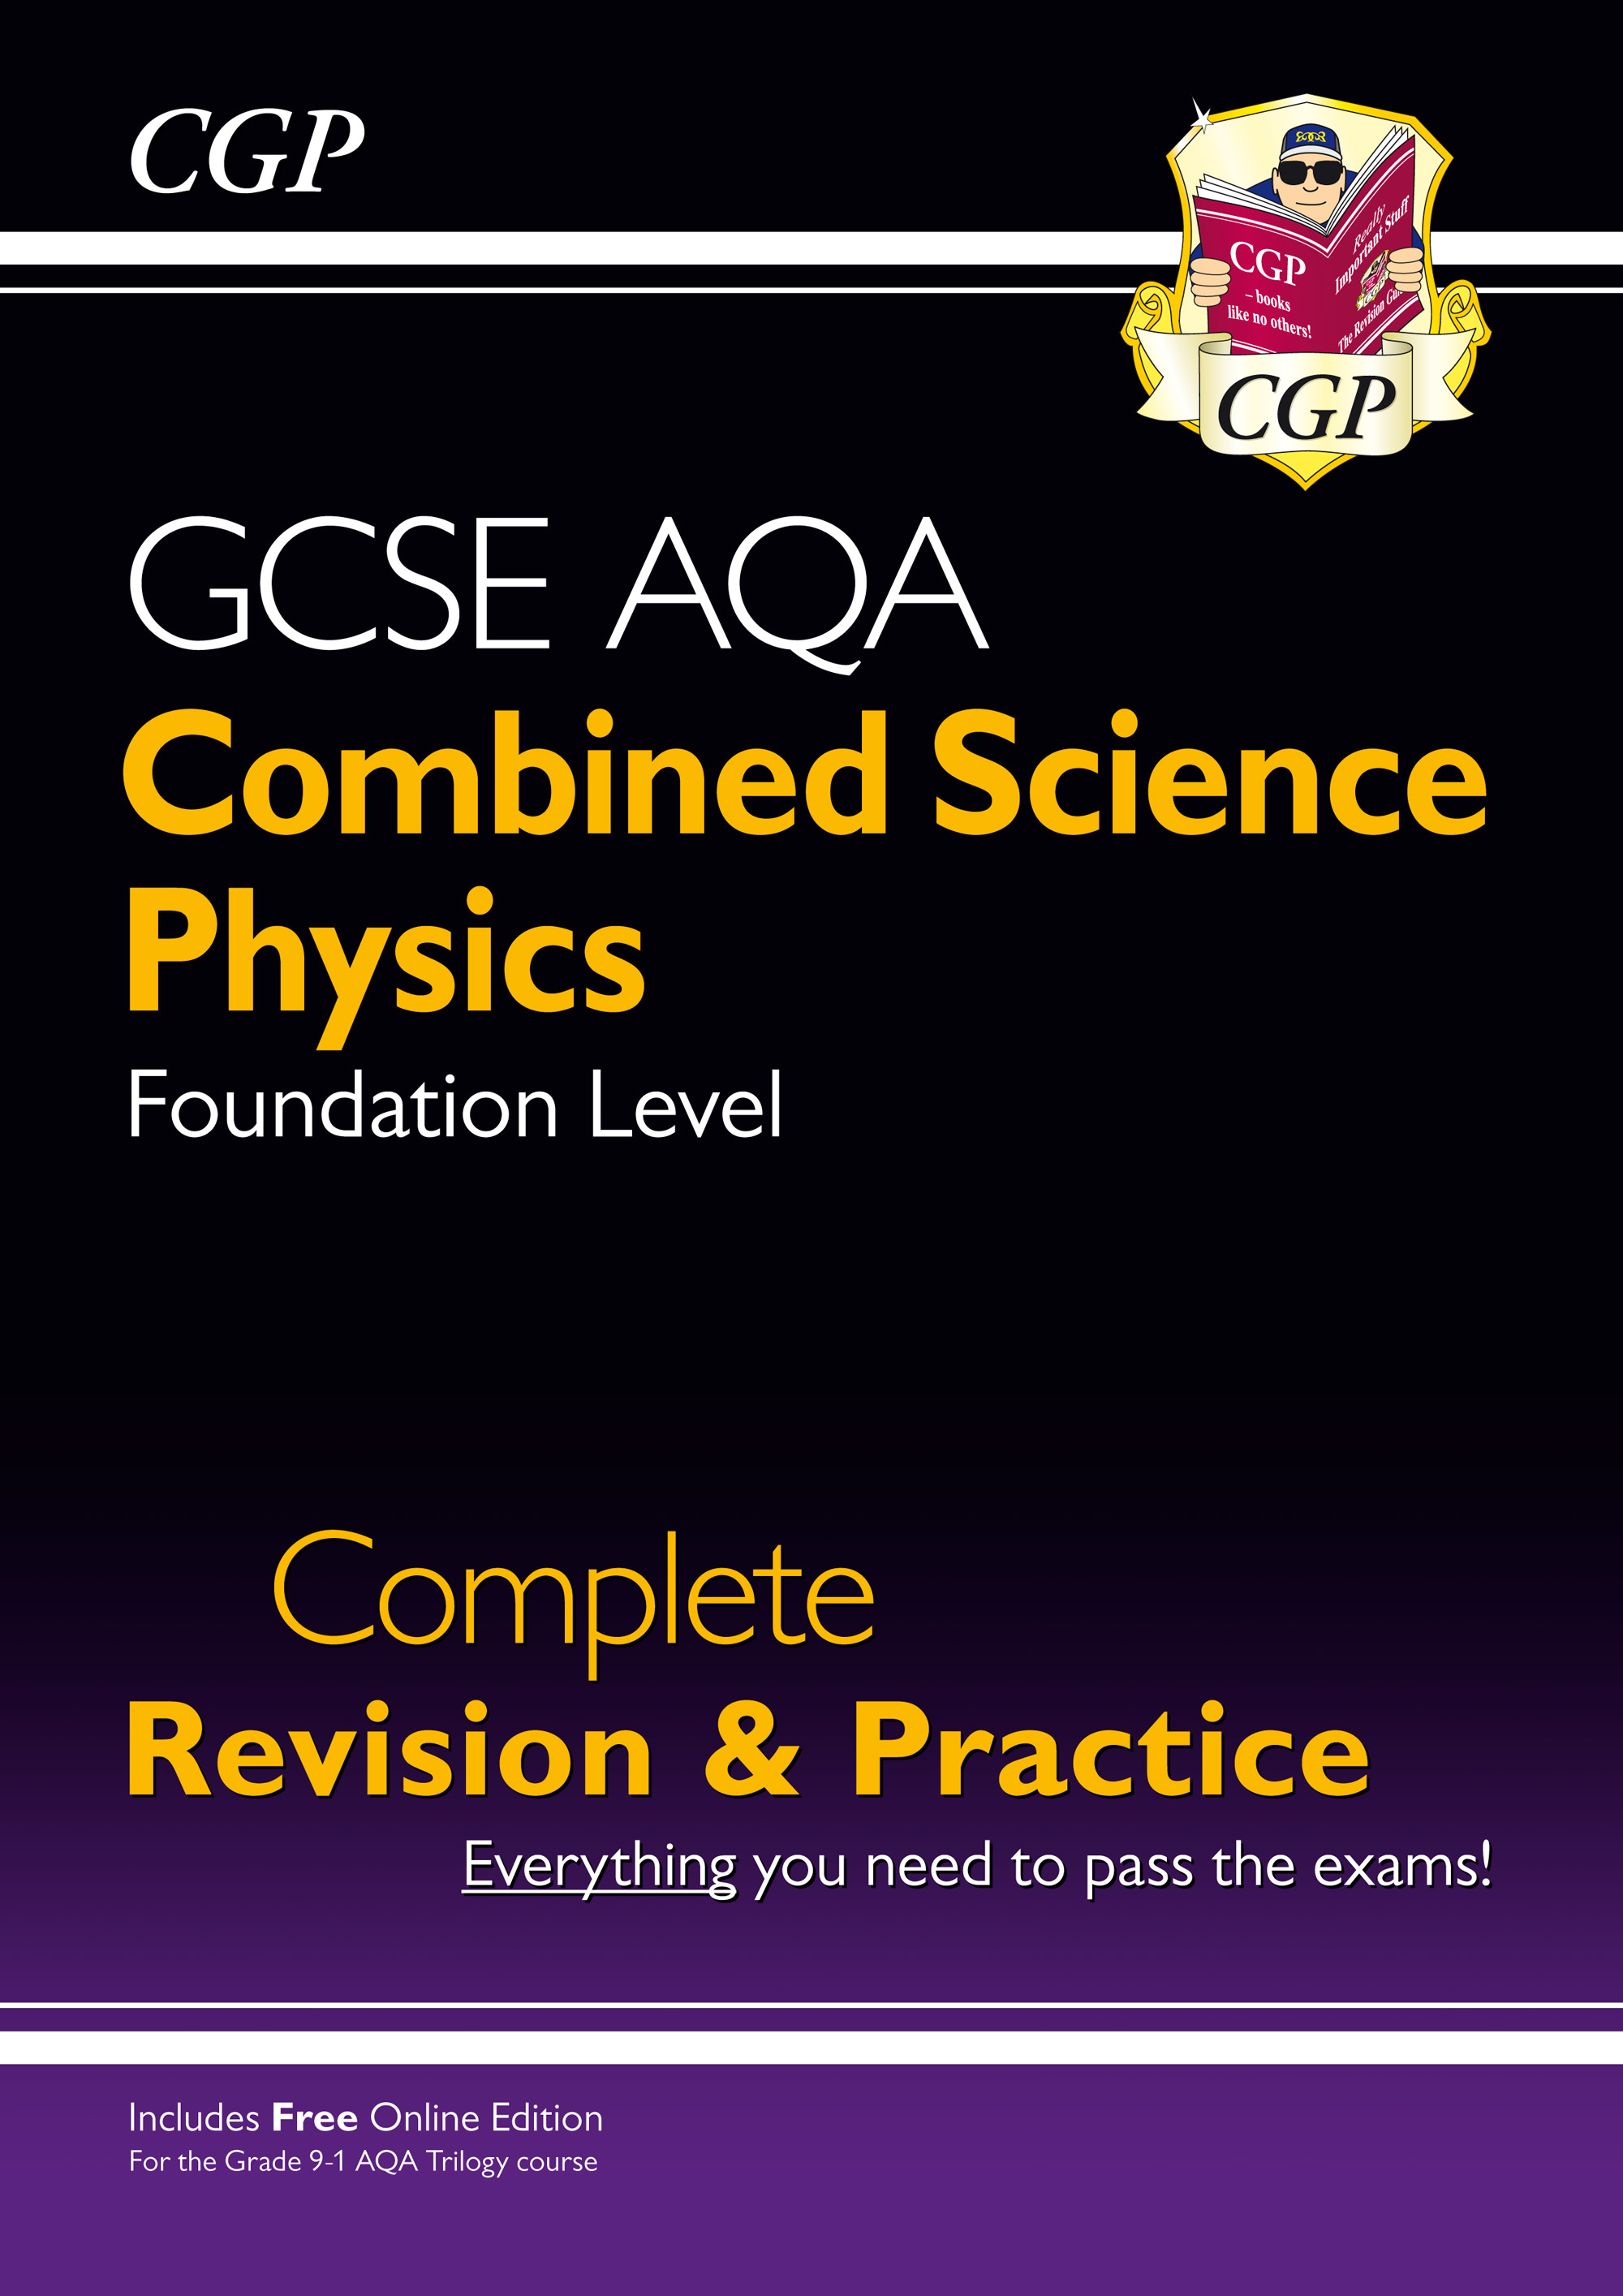 SCPAFS41 - New 9-1 GCSE Combined Science: Physics AQA Foundation Complete Revision & Practice with O